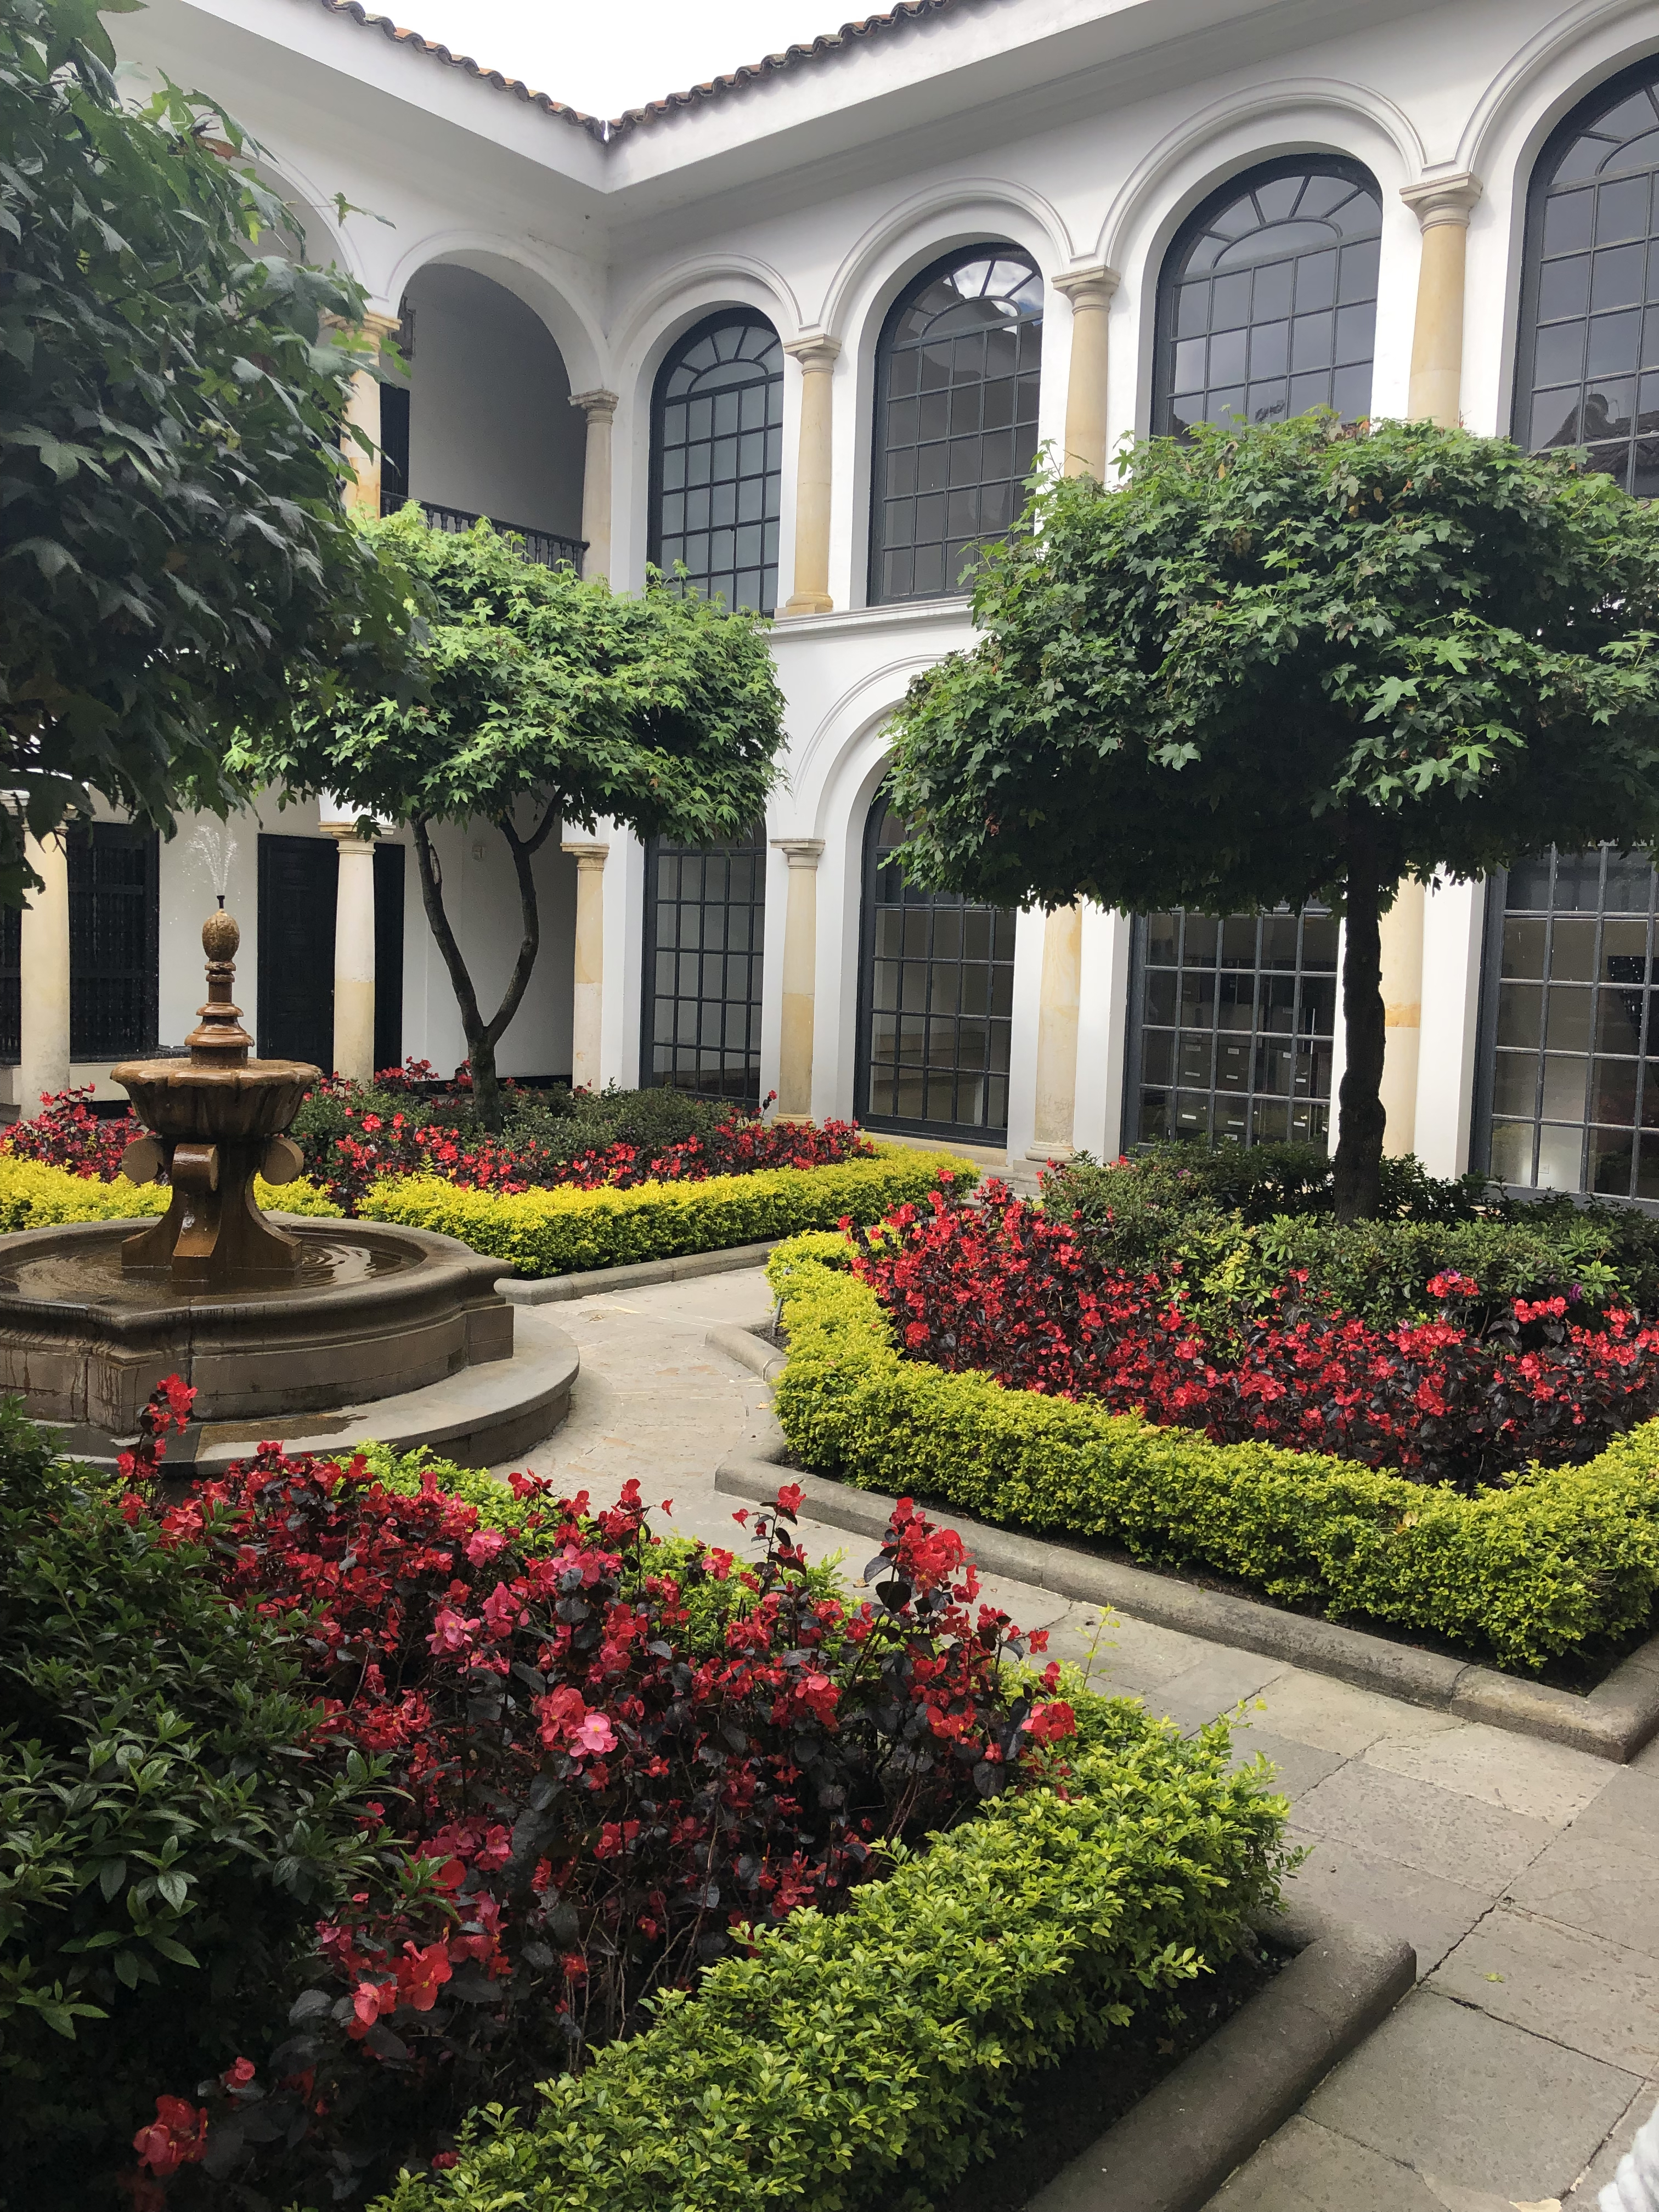 Courtyard of the Botero Museum